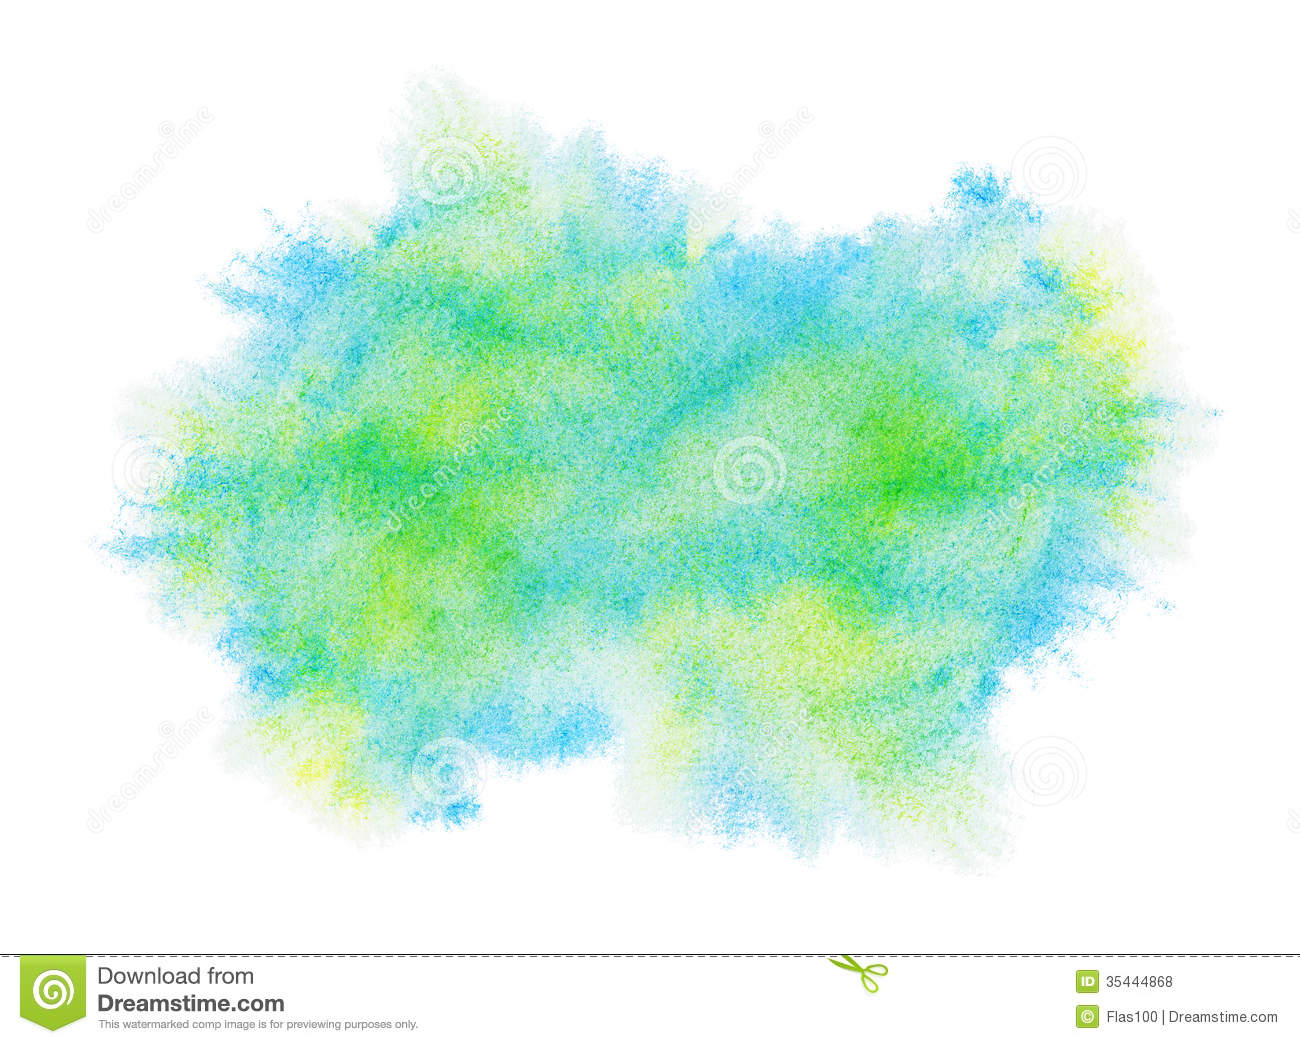 Watercolor splatter vector abstract watercolor background - Painted Green Watercolor Stain Royalty Free Stock Photos